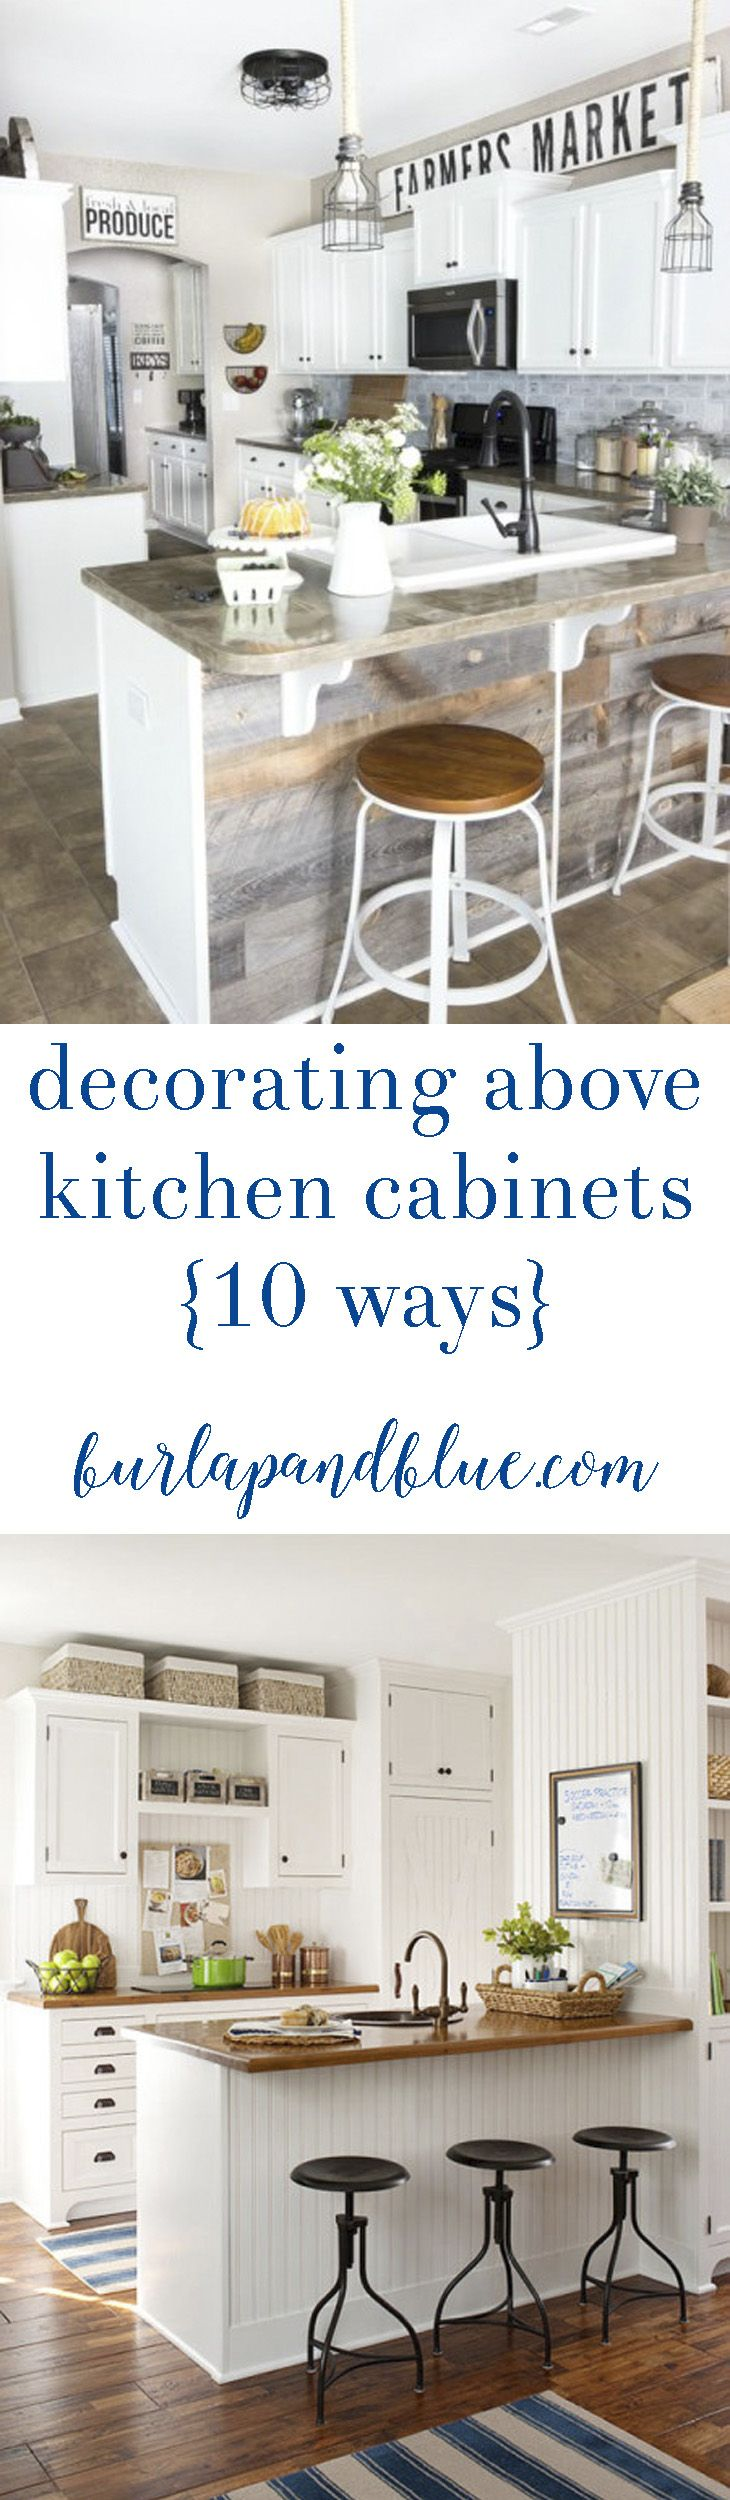 cabinets not reach the ceiling wondering how to decorate above them sharing 10 easy - Decorate Pictures